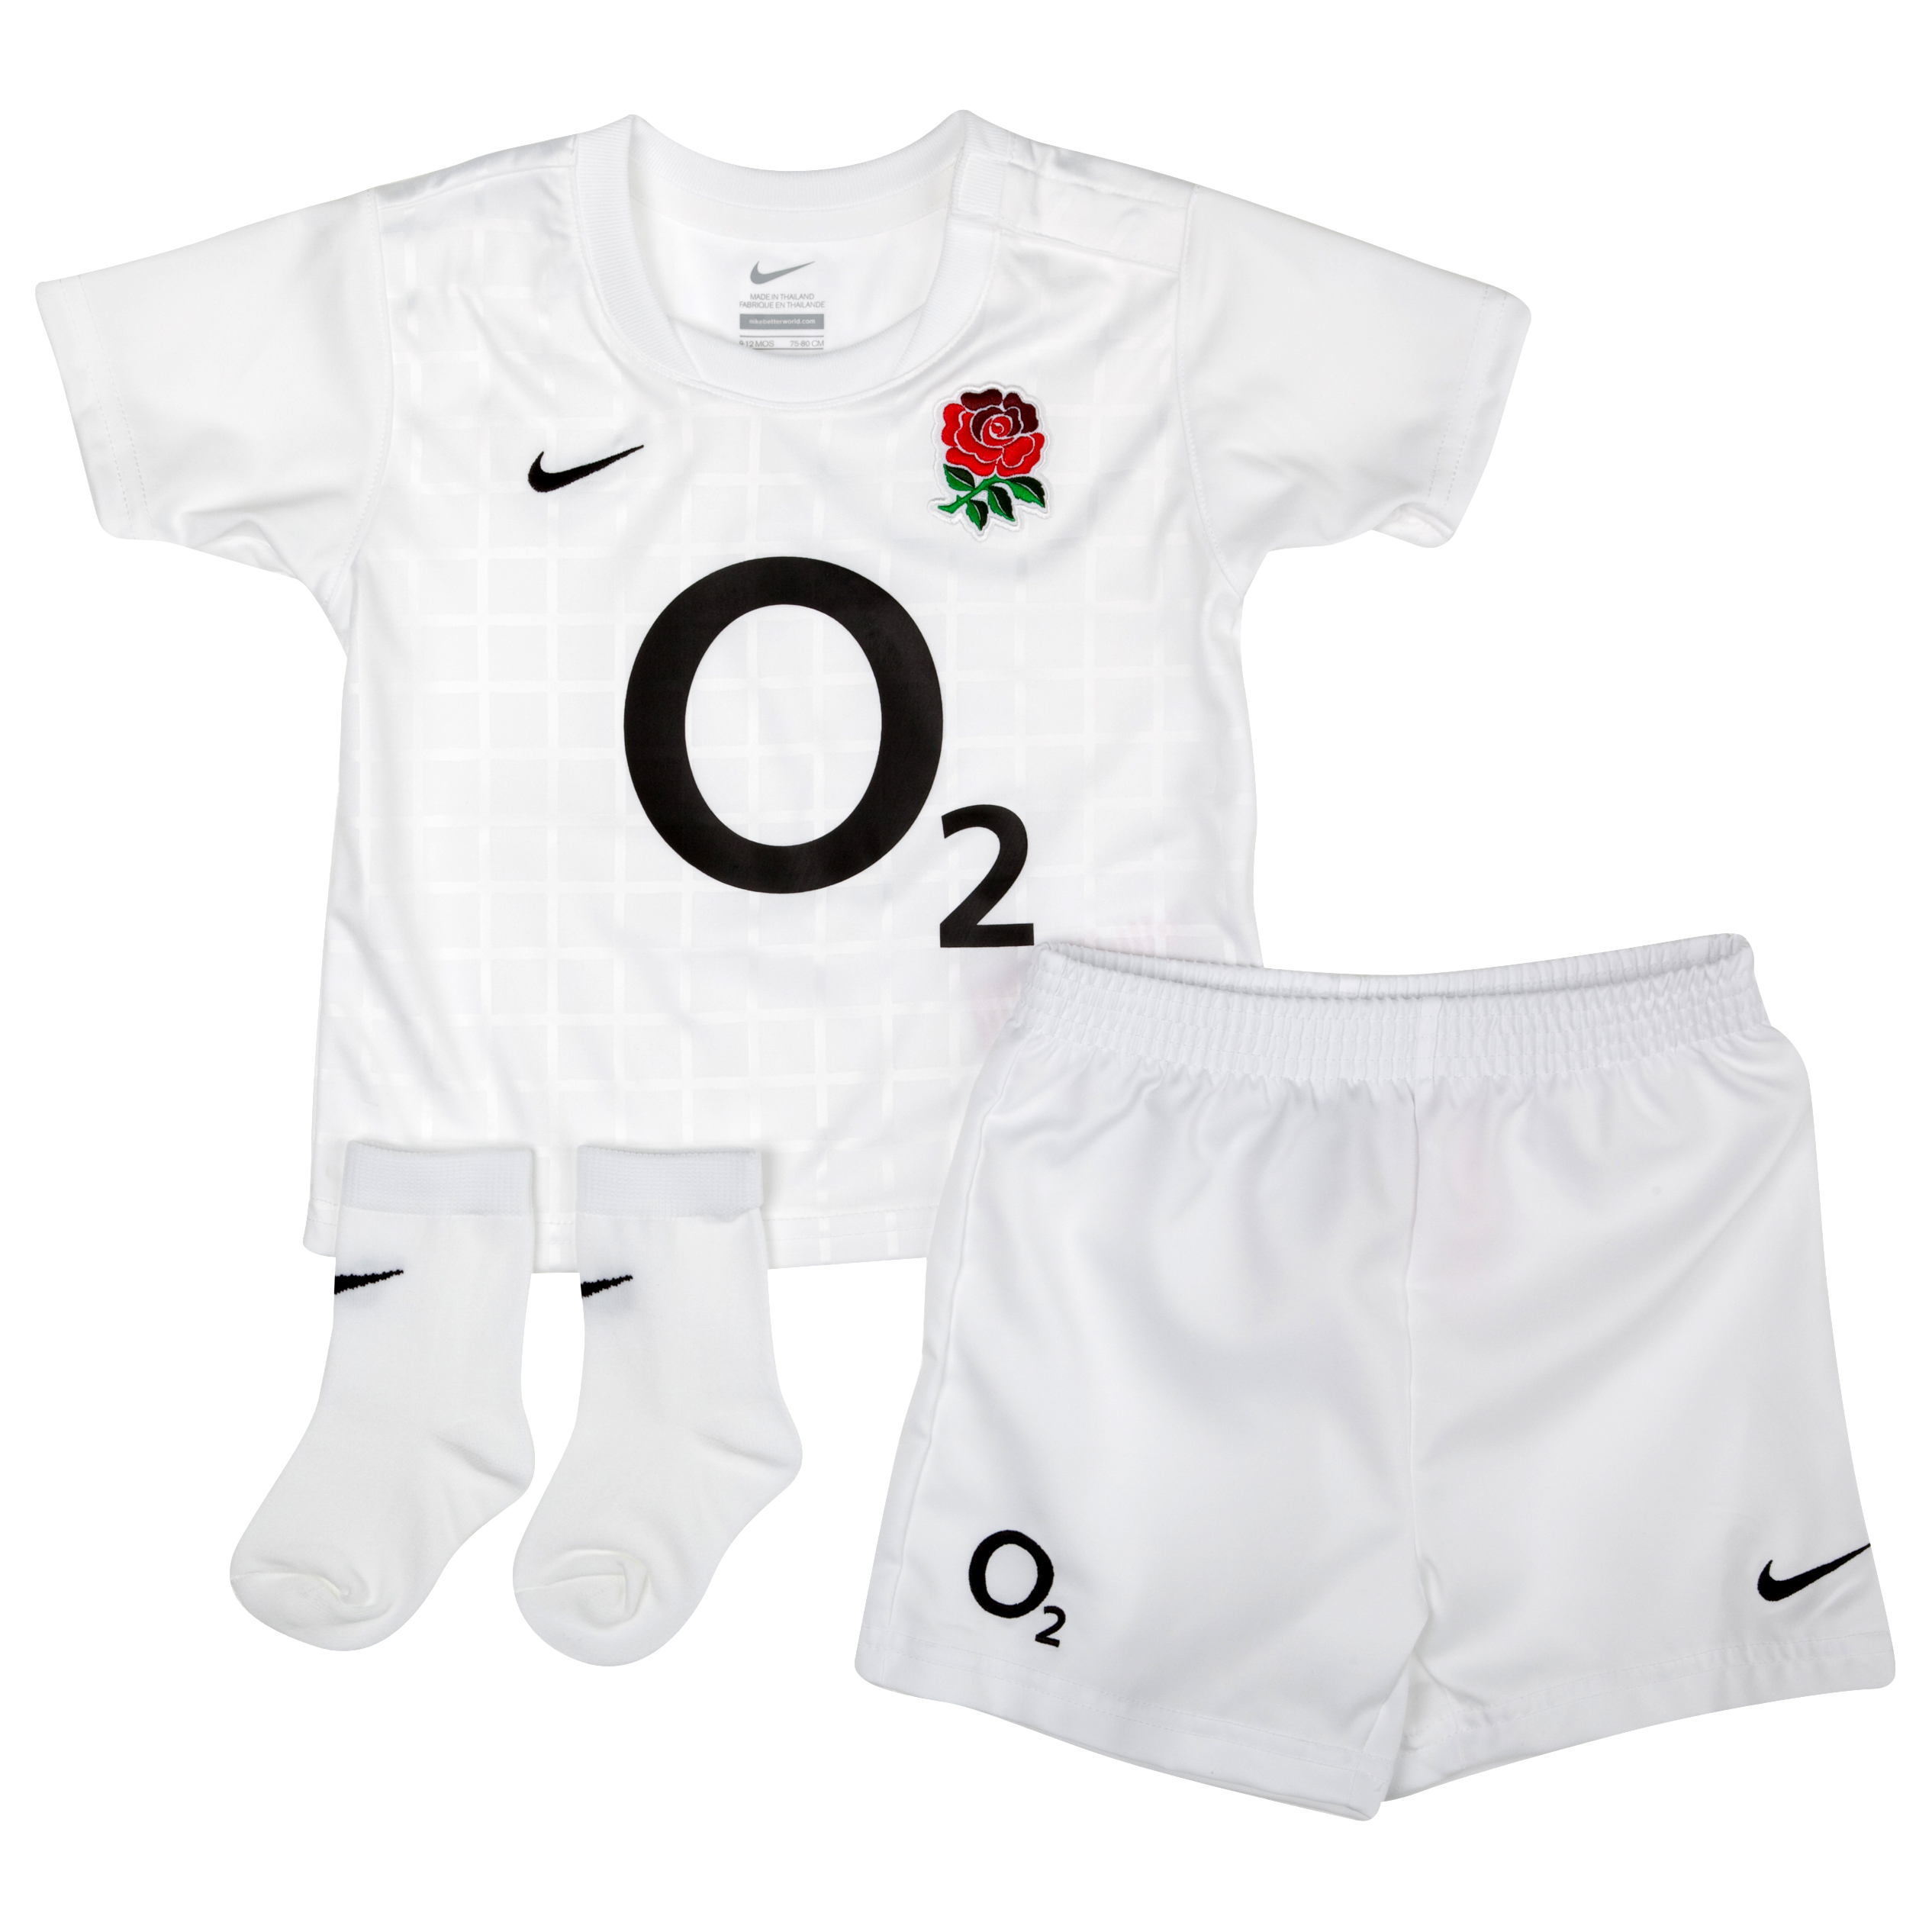 England Rugby Home Replica Kit  2011/12 - Little Kids